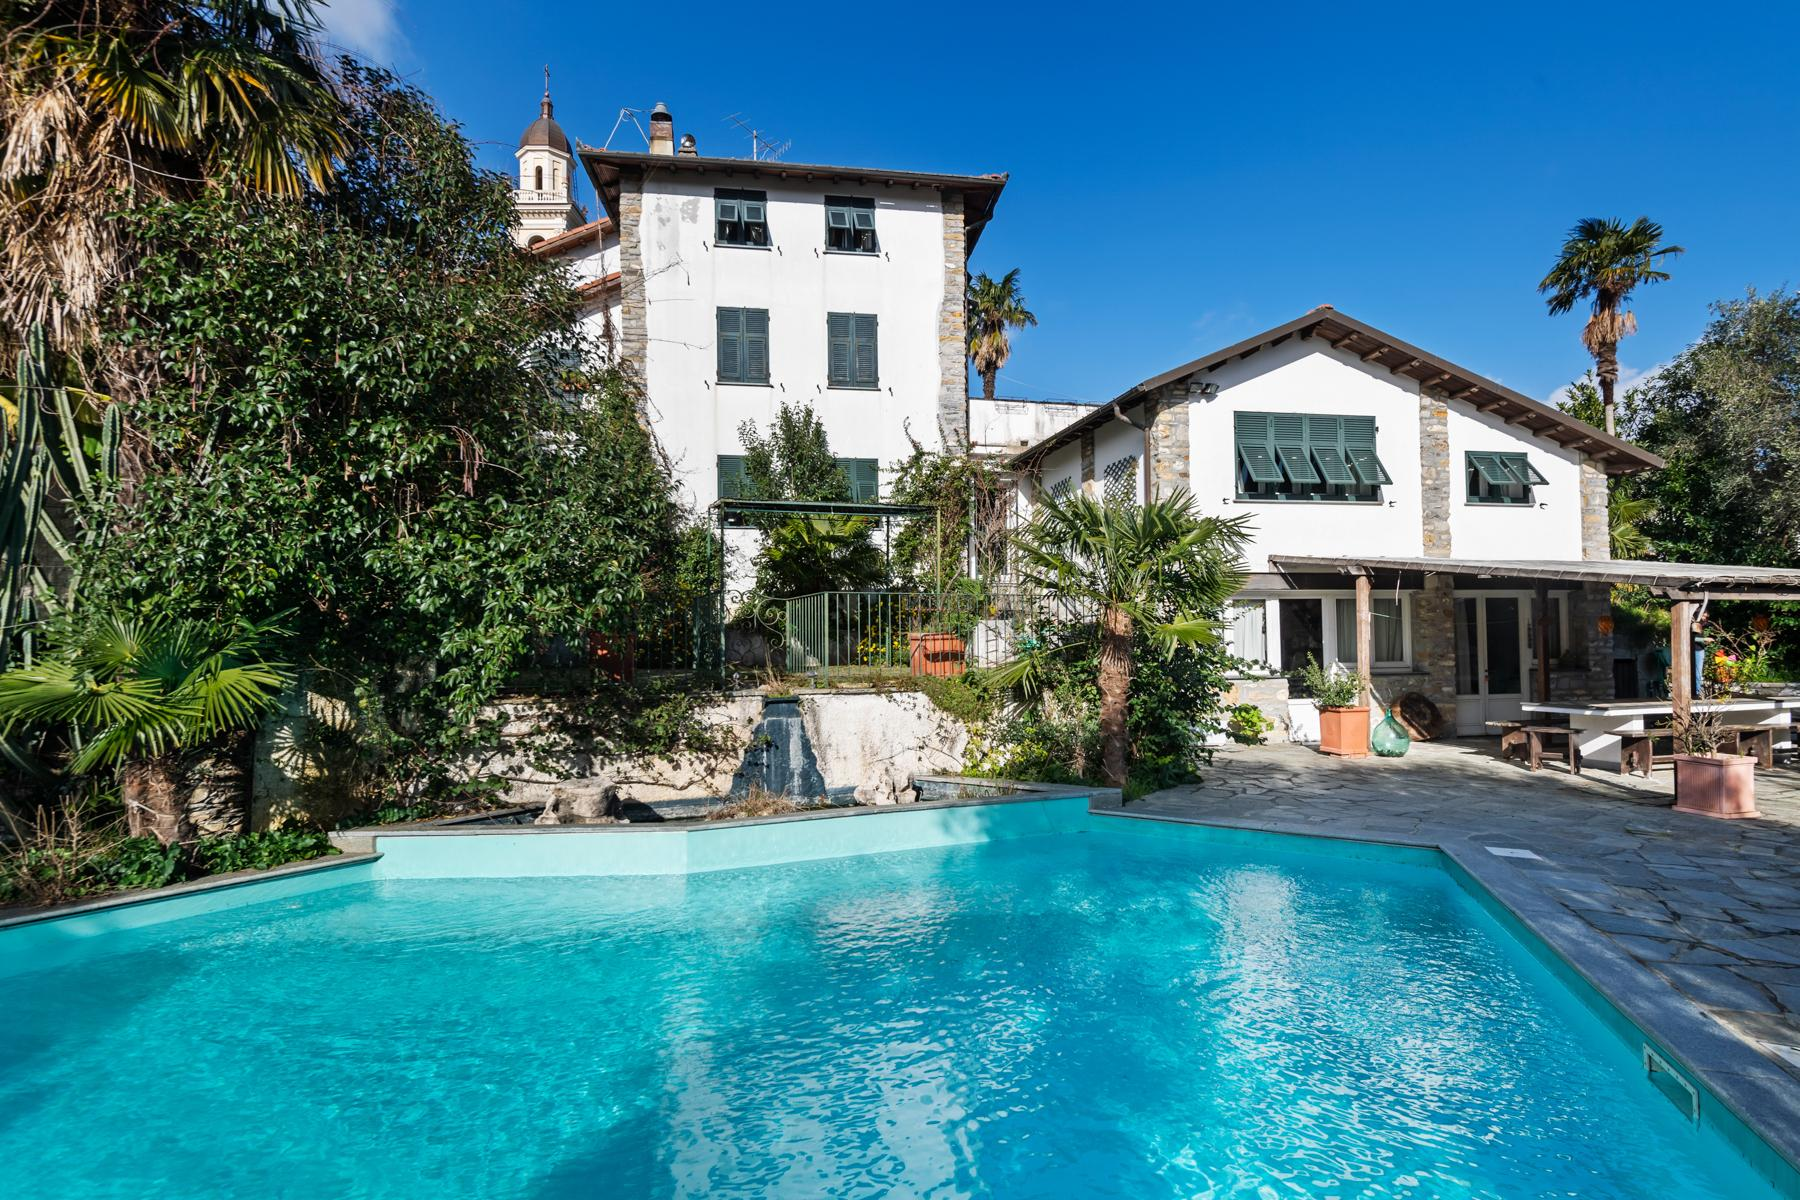 Villa with swimming pool on the hill of Rapallo - 1